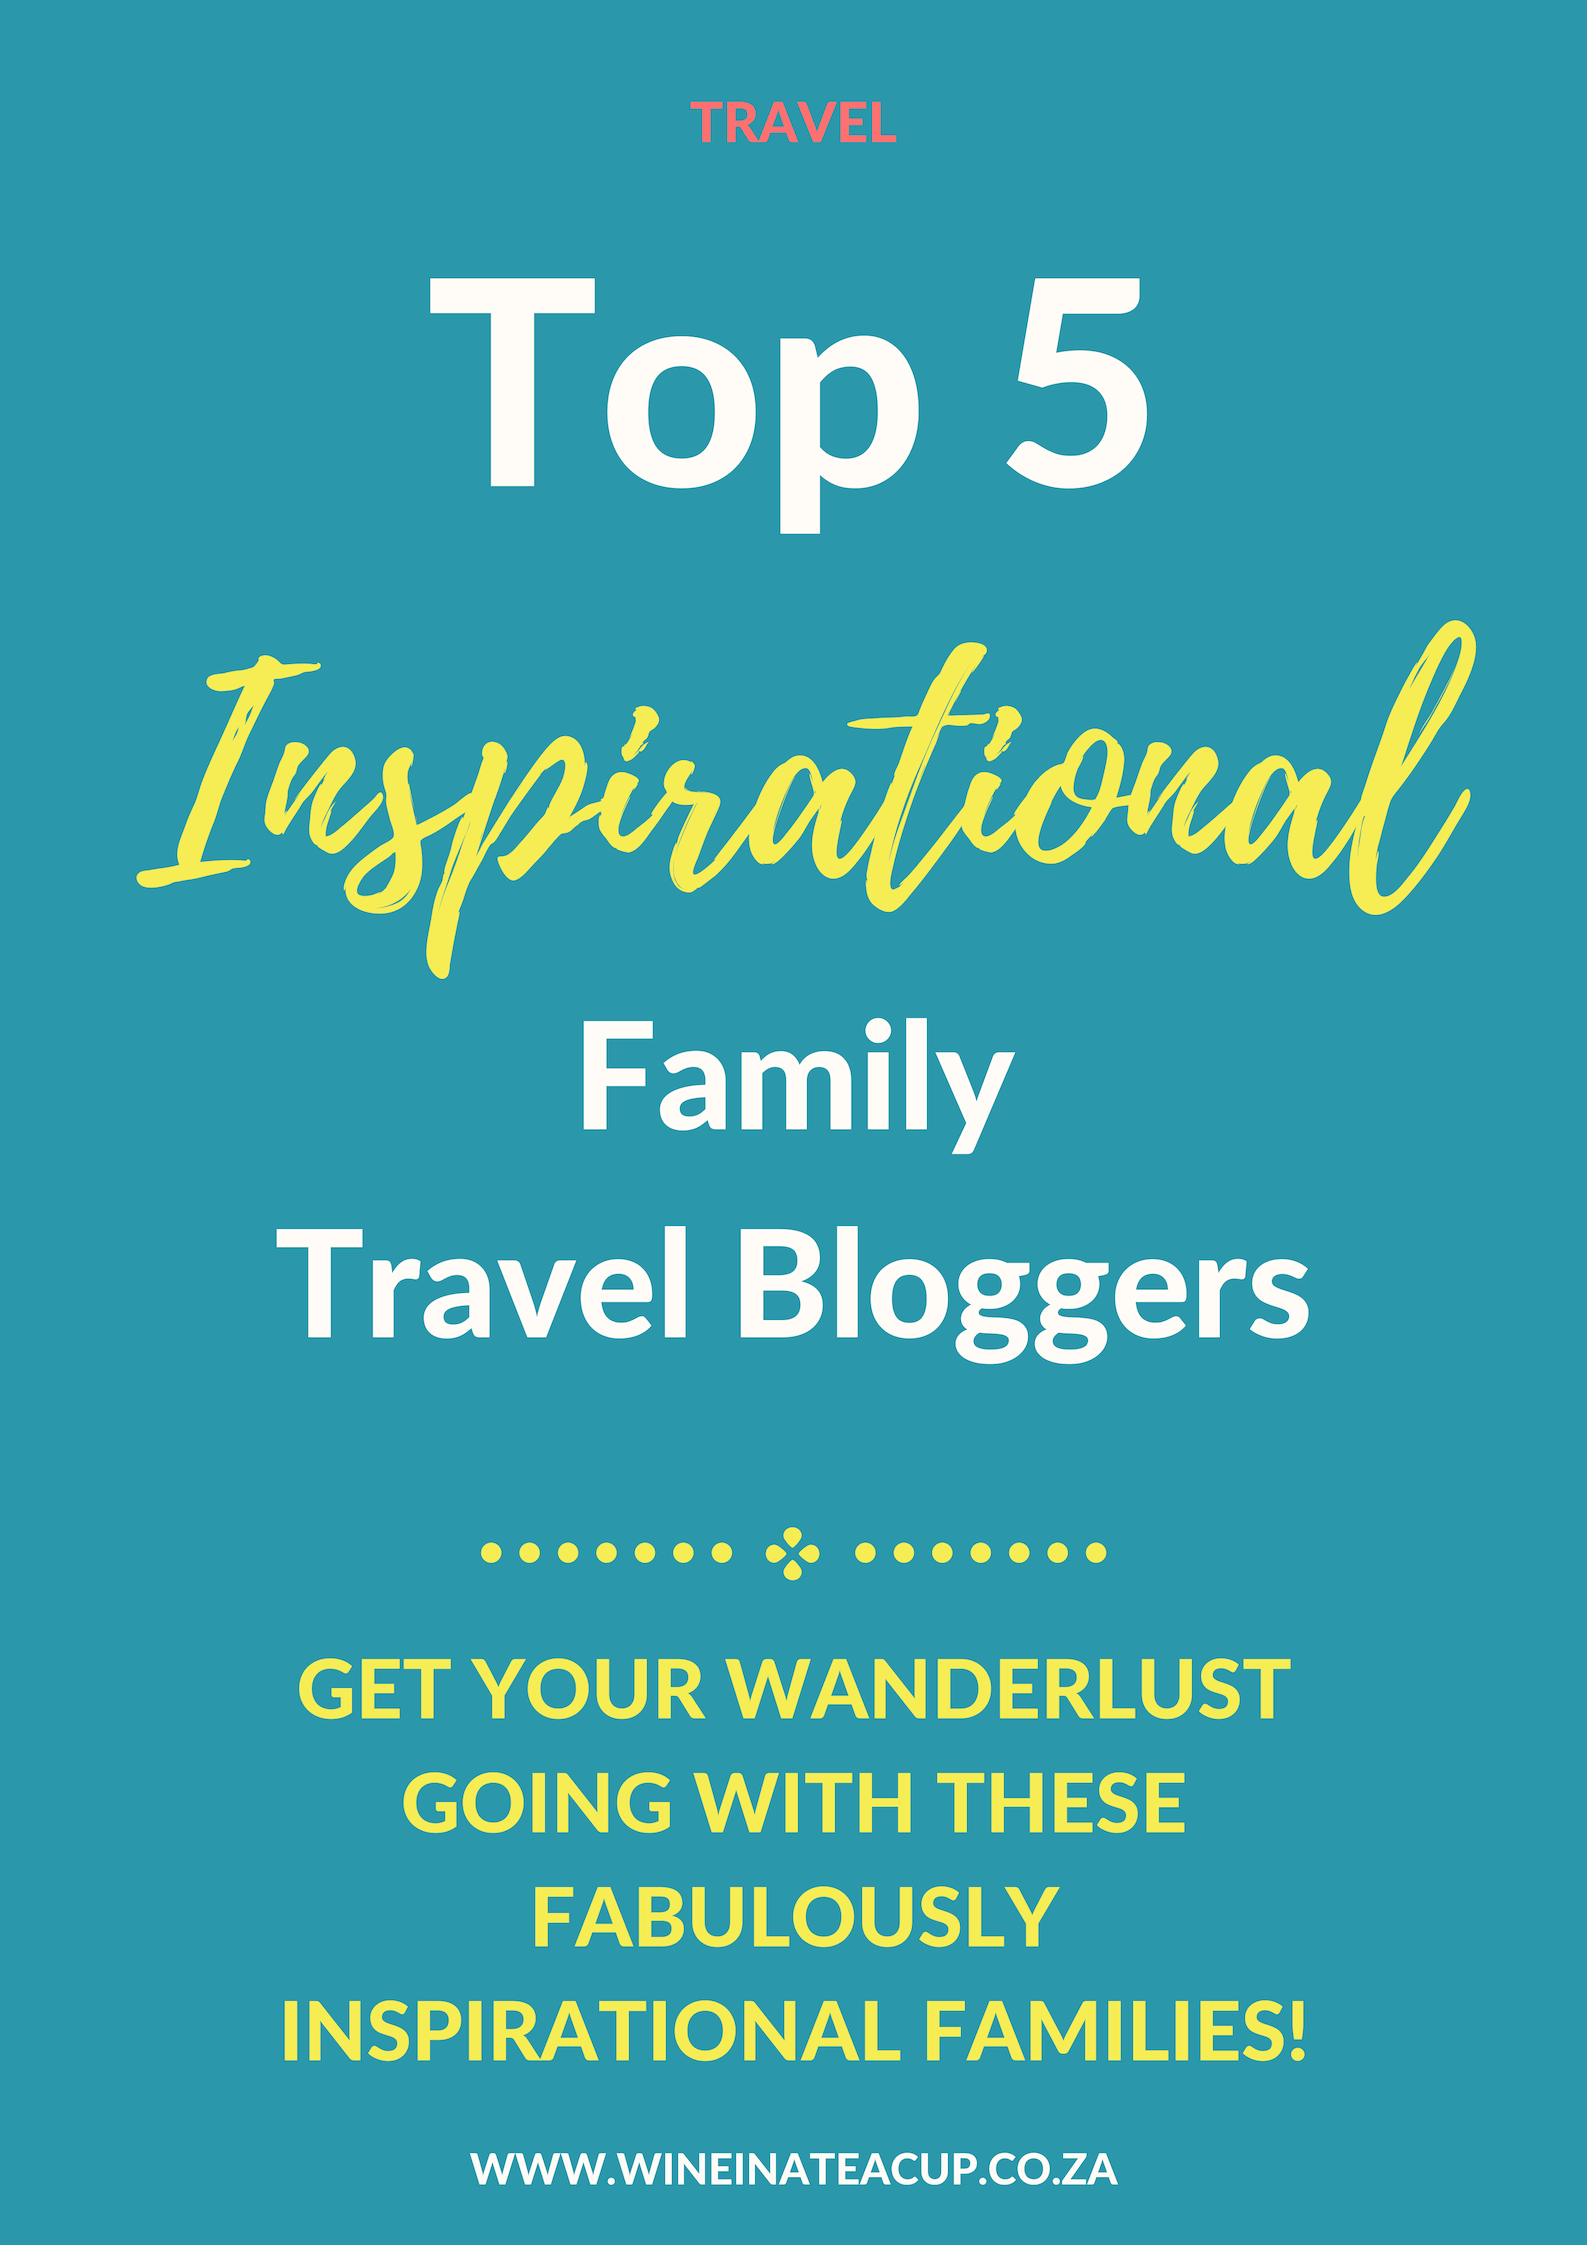 Top 5 Inspirational Family Travel Bloggers www.wineinateacup.com #travellingwithkids #travelingwithkids #travelbloggers #familytravelbloggers